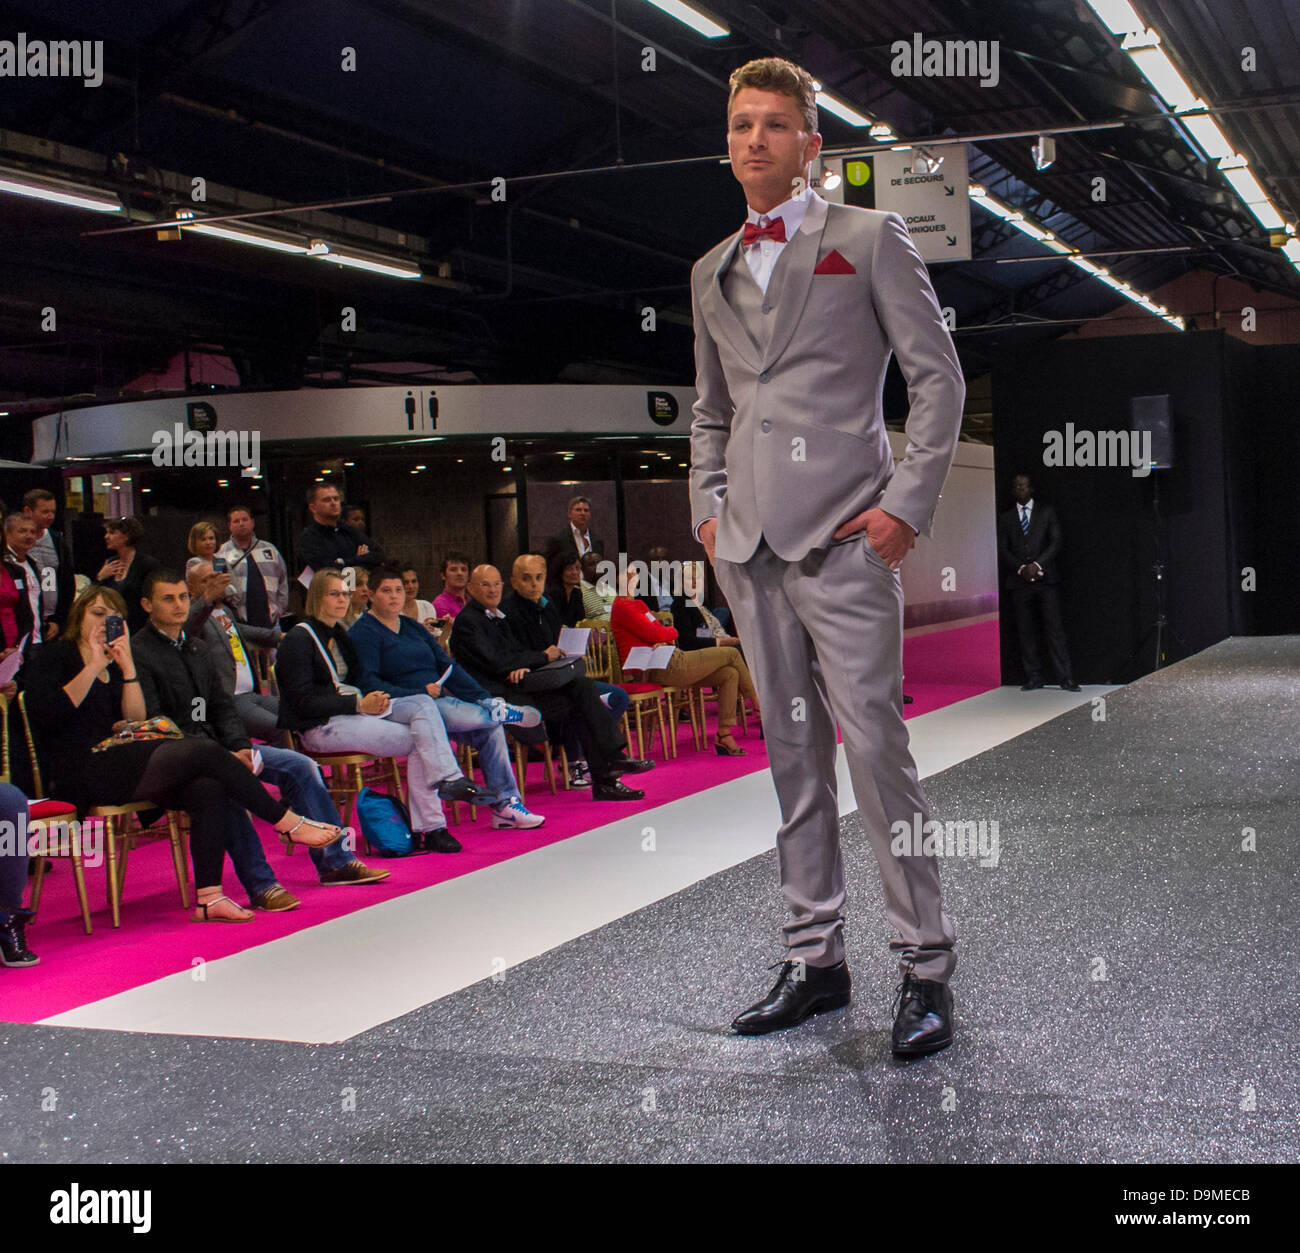 Paris, France, Male Model in Fashion Show, at First Gay Marriage Trade Show, on Catwalk in front of Audience - Stock Image